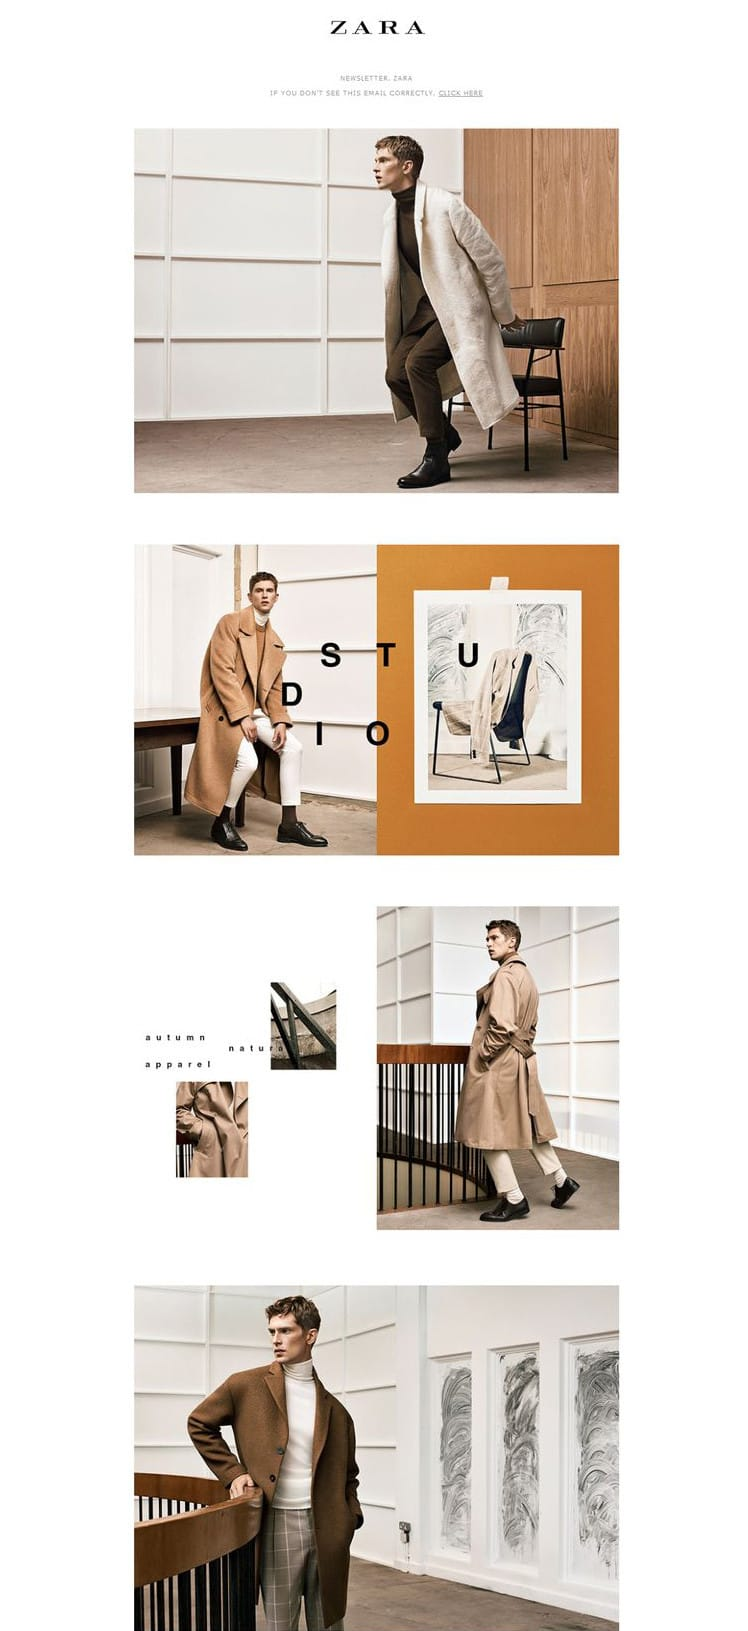 e-newletter email newsletter marketing design layout inspiration zara fashion menswear elegant